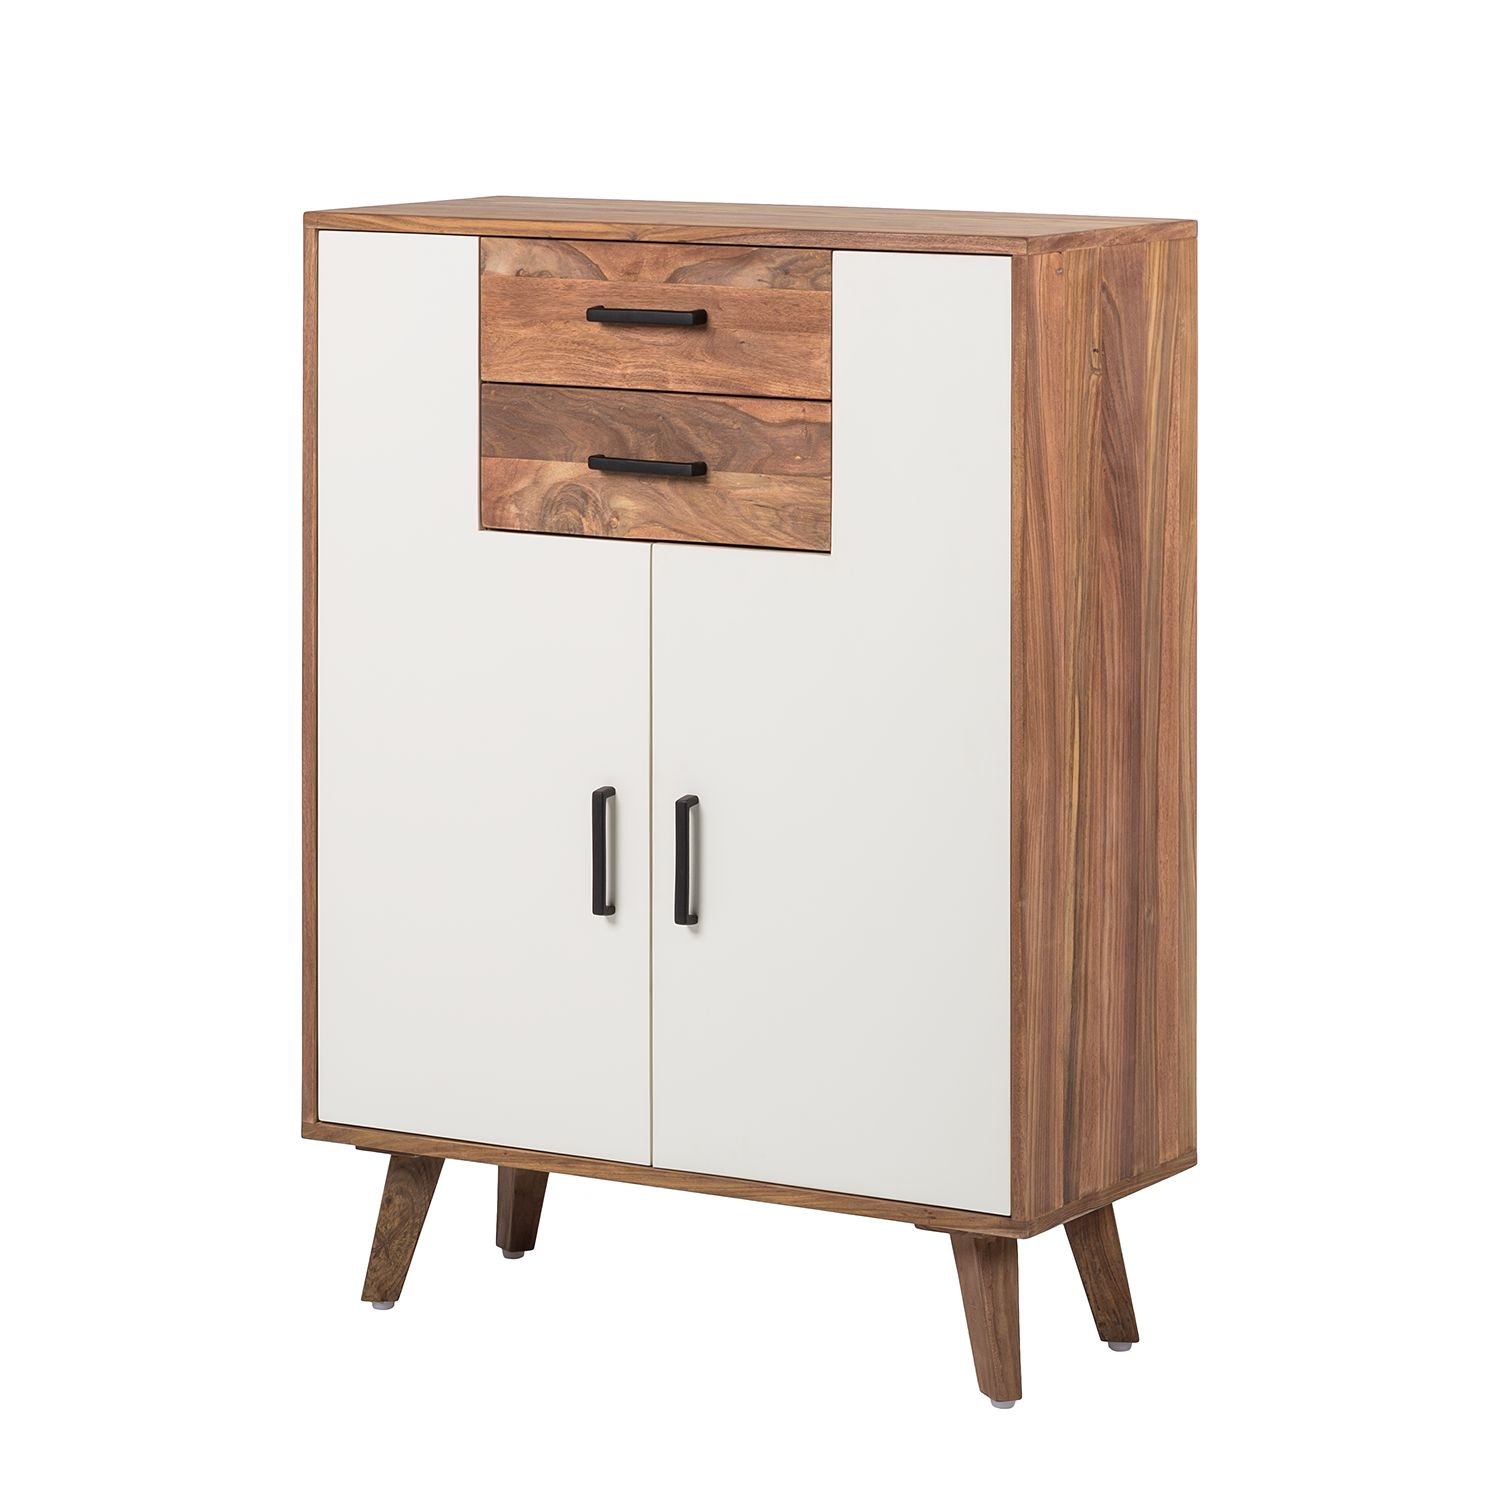 Commode Nilsson - Sheesham partiellement massif Blanc, Morteens